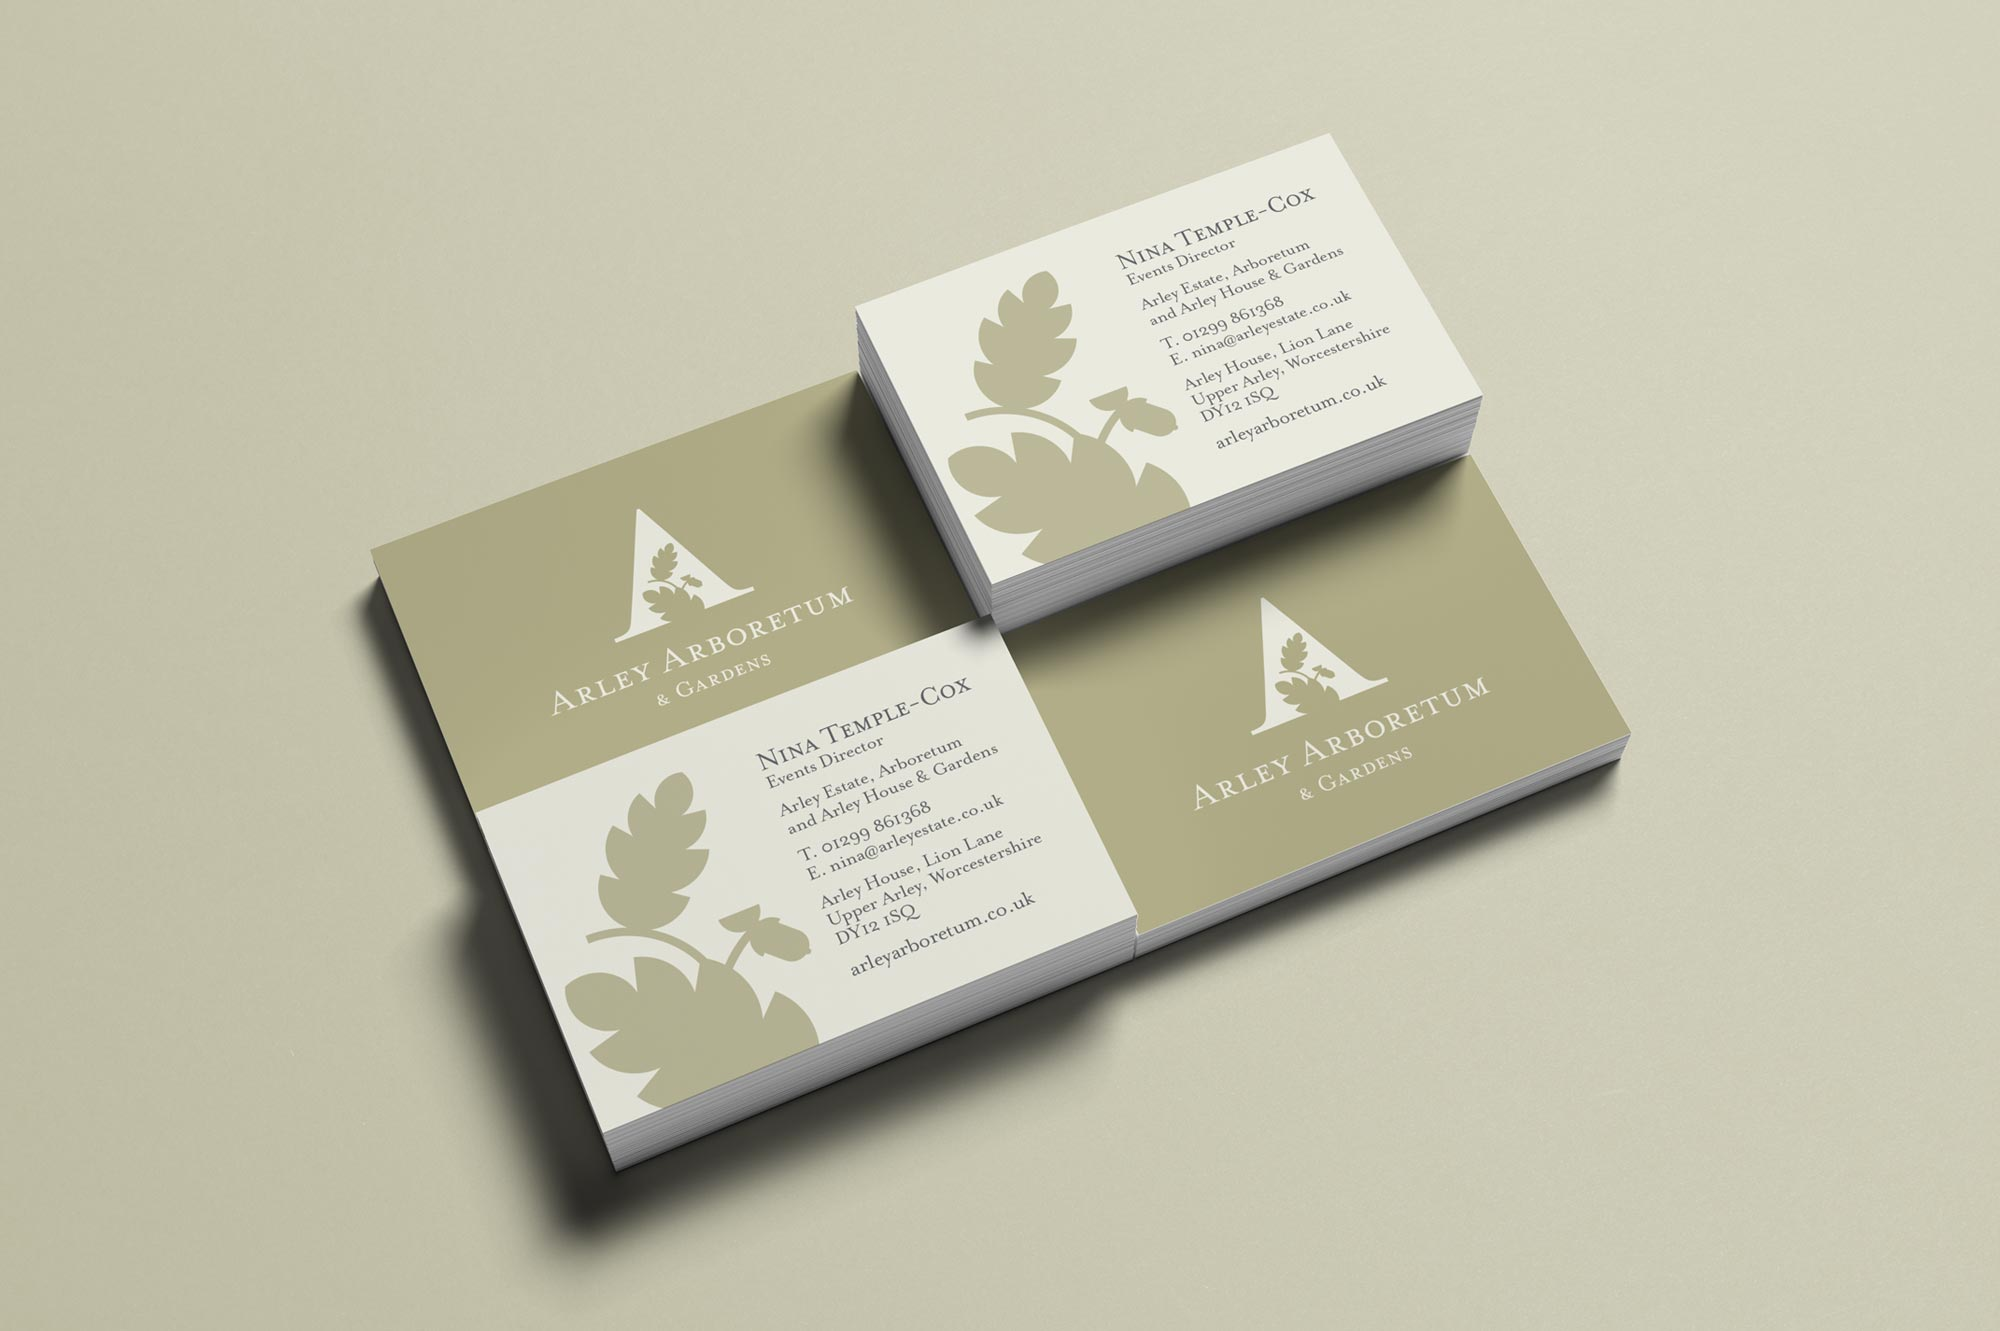 Arley Arboretum Business Cards